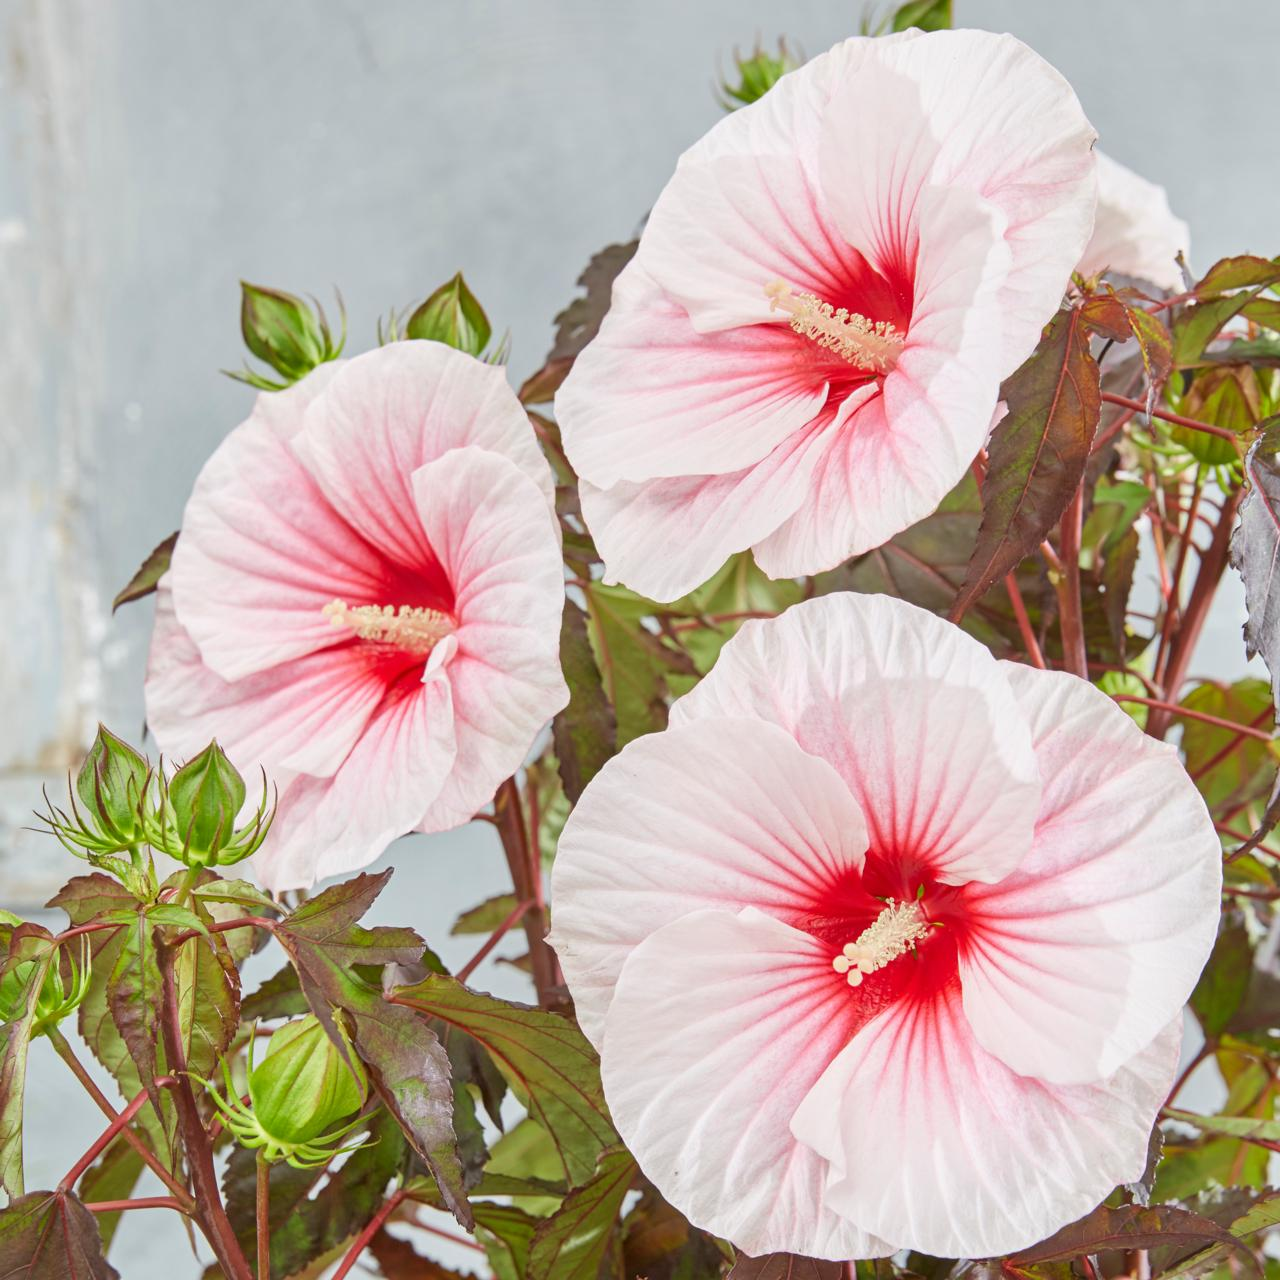 Hibiscus moscheutos 'Carousel Pink Candy' plant